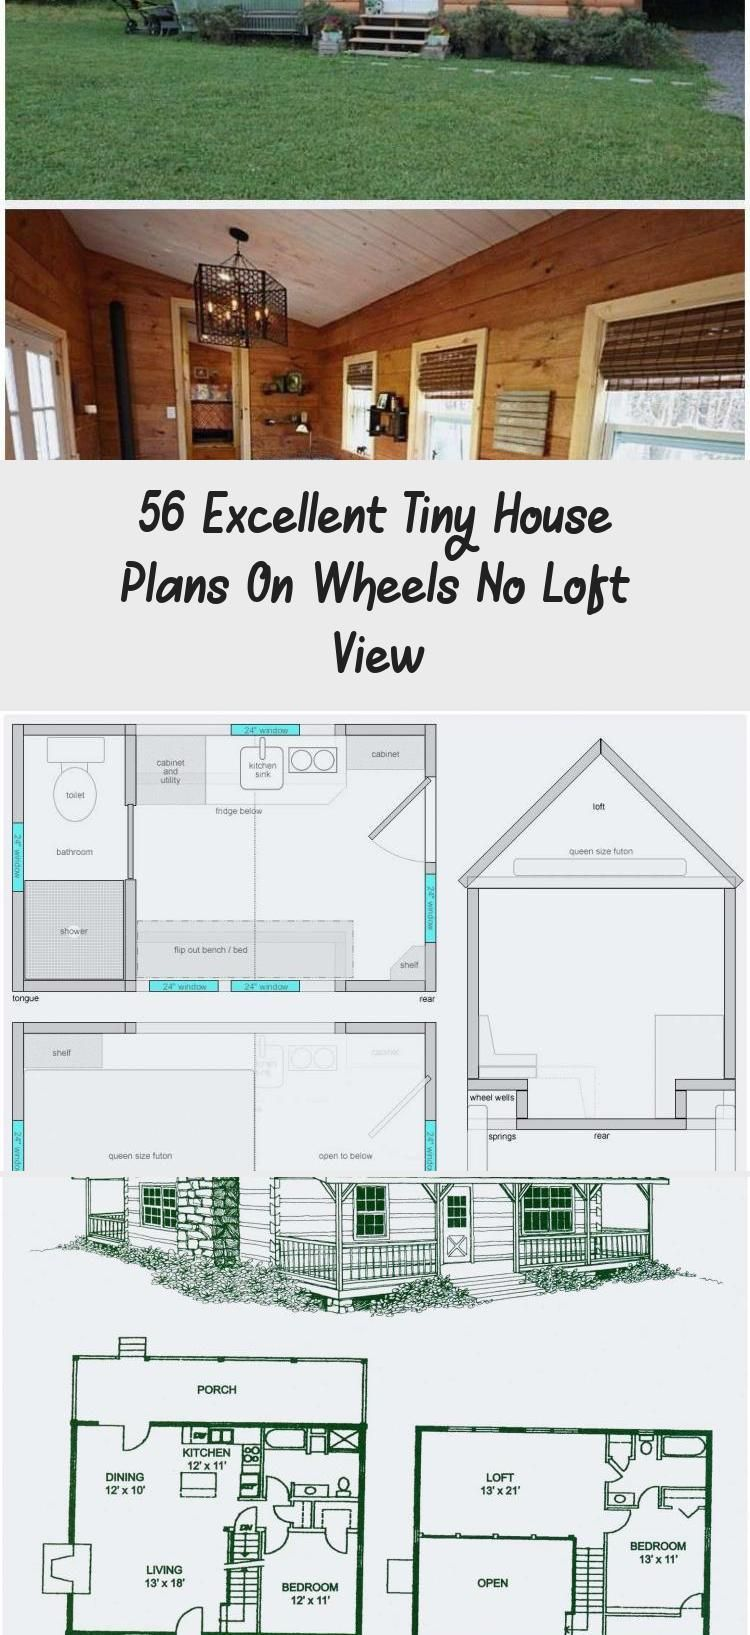 Floor House Loft Luxury Open Plan Plans Small Tiny Tinyhomesonwheelsnolo In 2020 Modern House Plans Open Floor Small House Open Floor Plan Modern House Plans